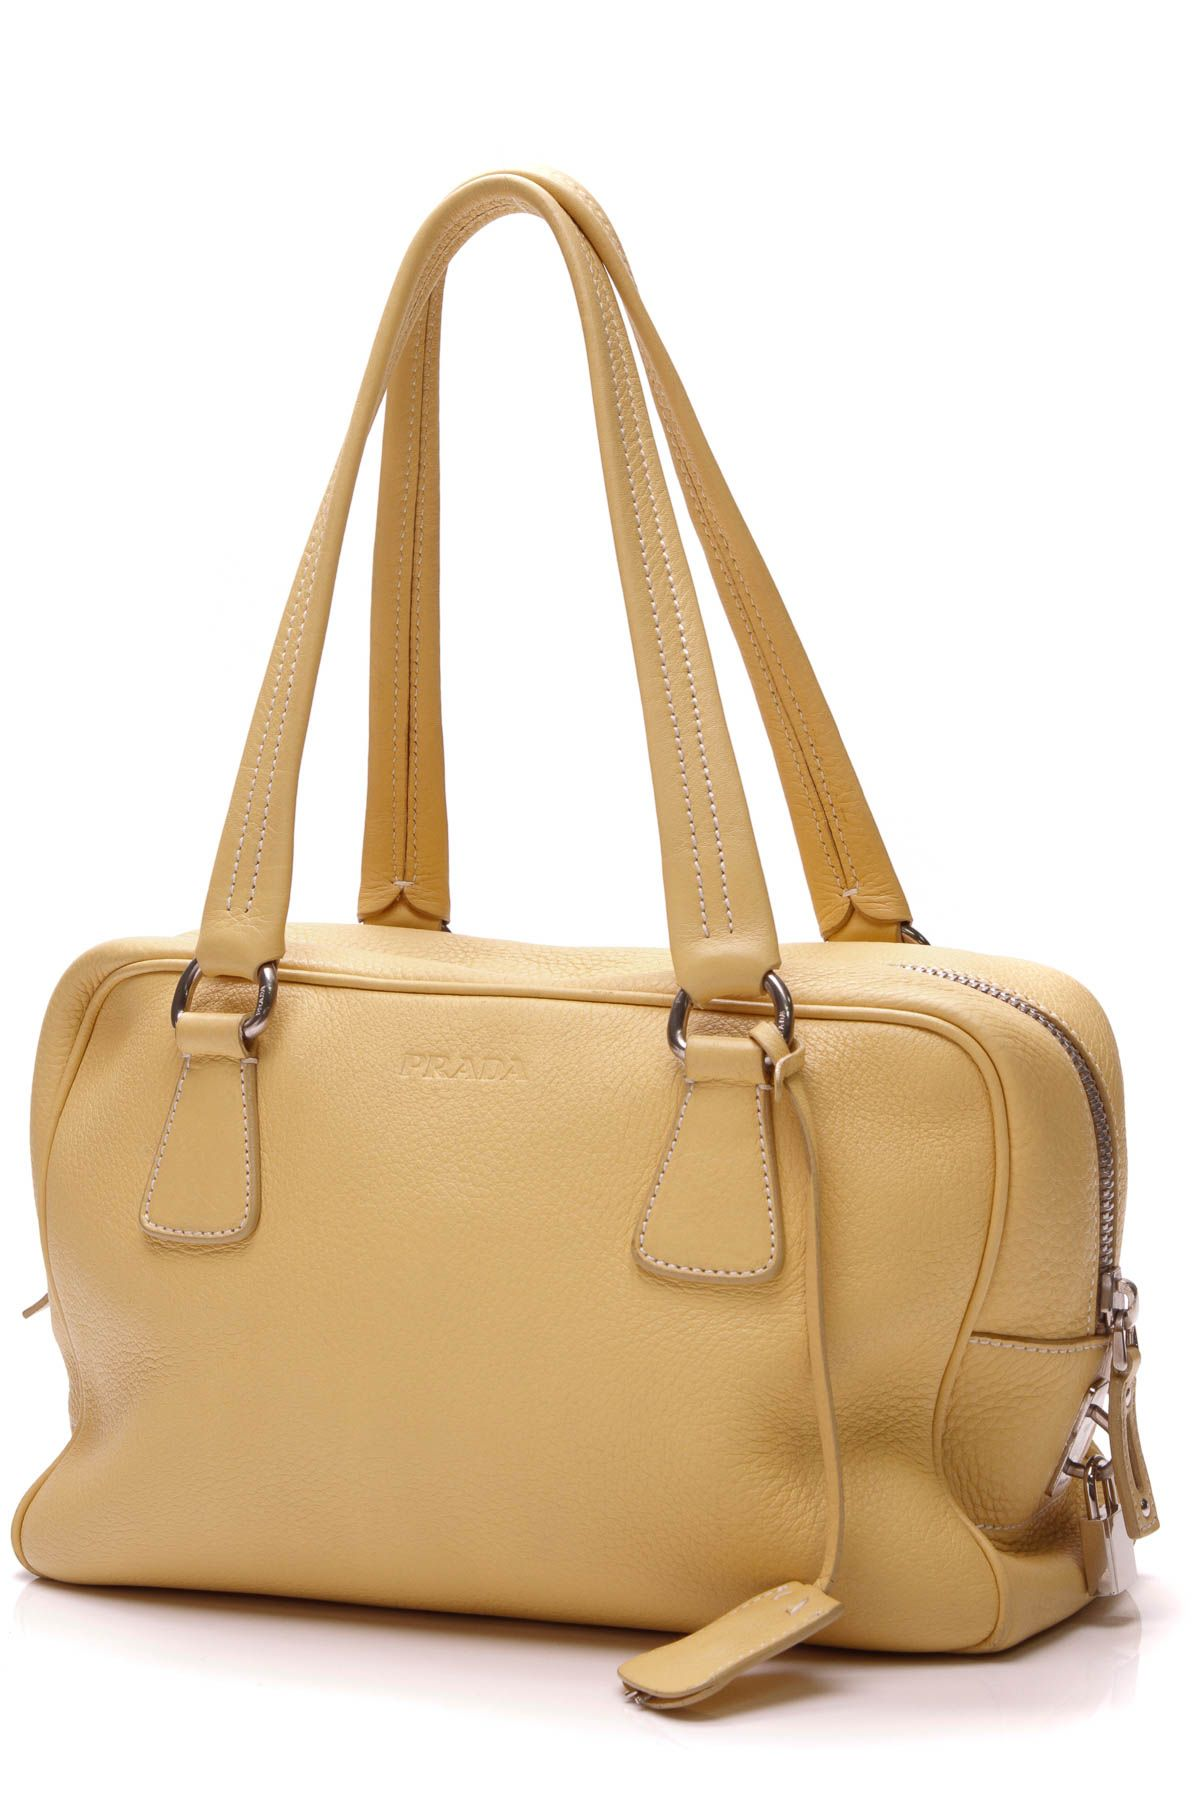 Vitello Shoulder Bag Yellow Leather Bags, Leather